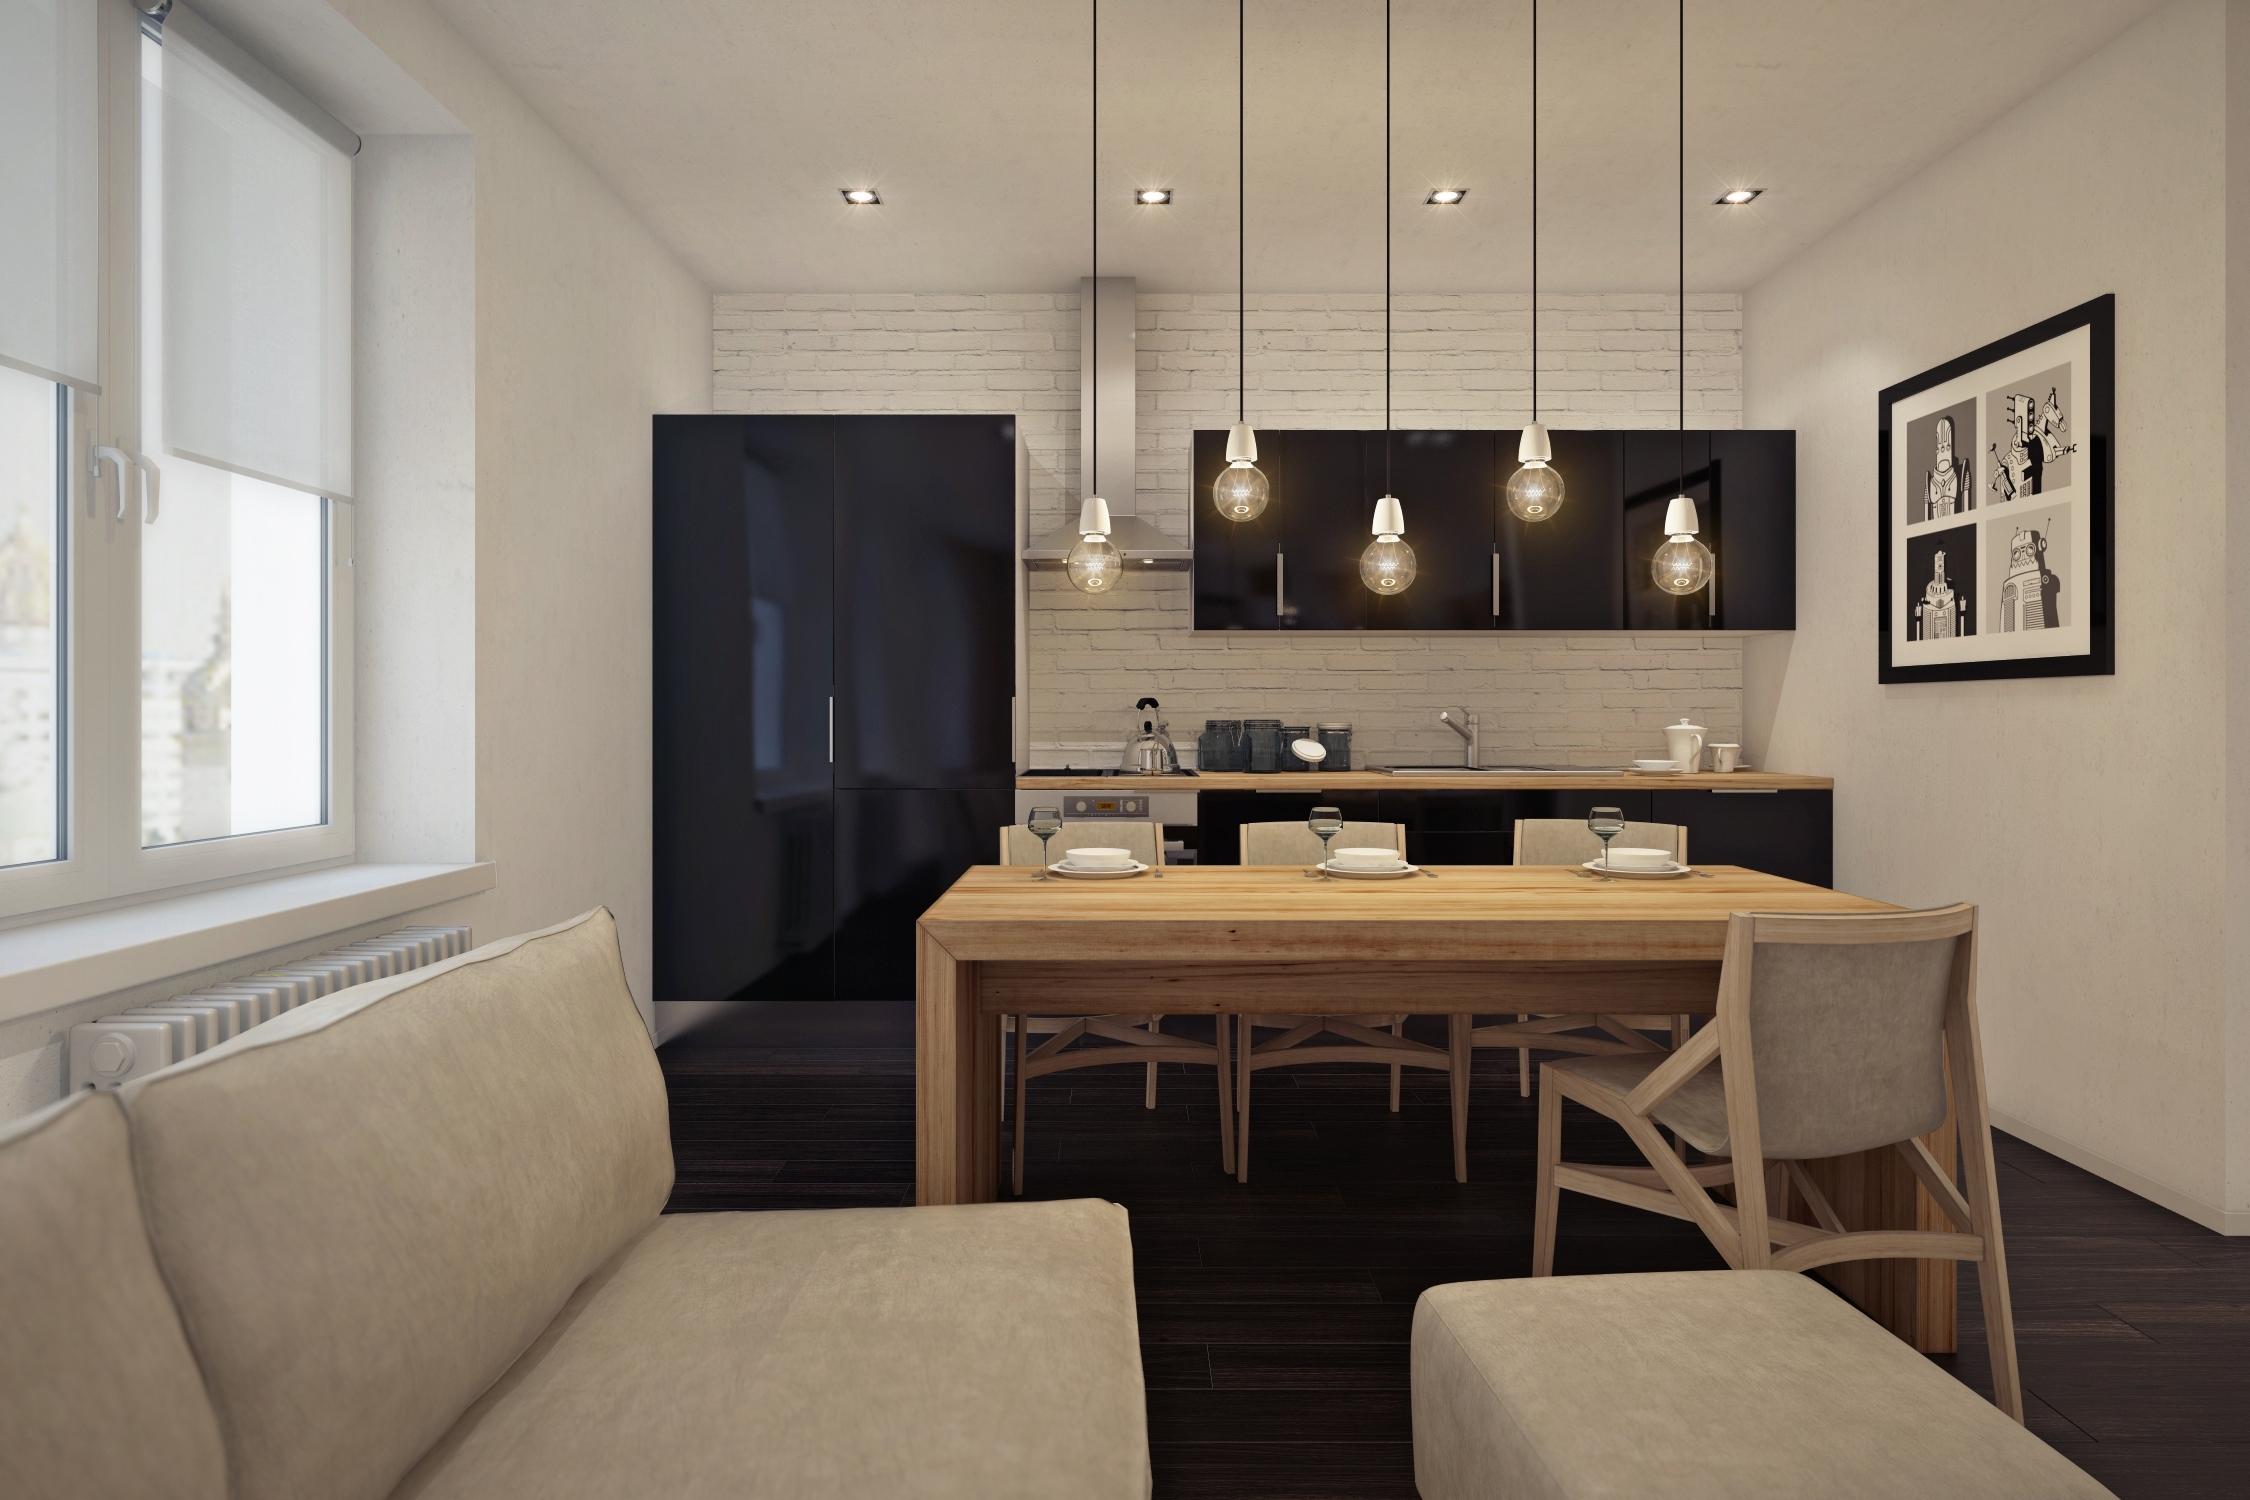 Best Small Apartment Design Ideas – Interior Design Small pertaining to Best Layout For Garden Woods Apartments Design Ideas